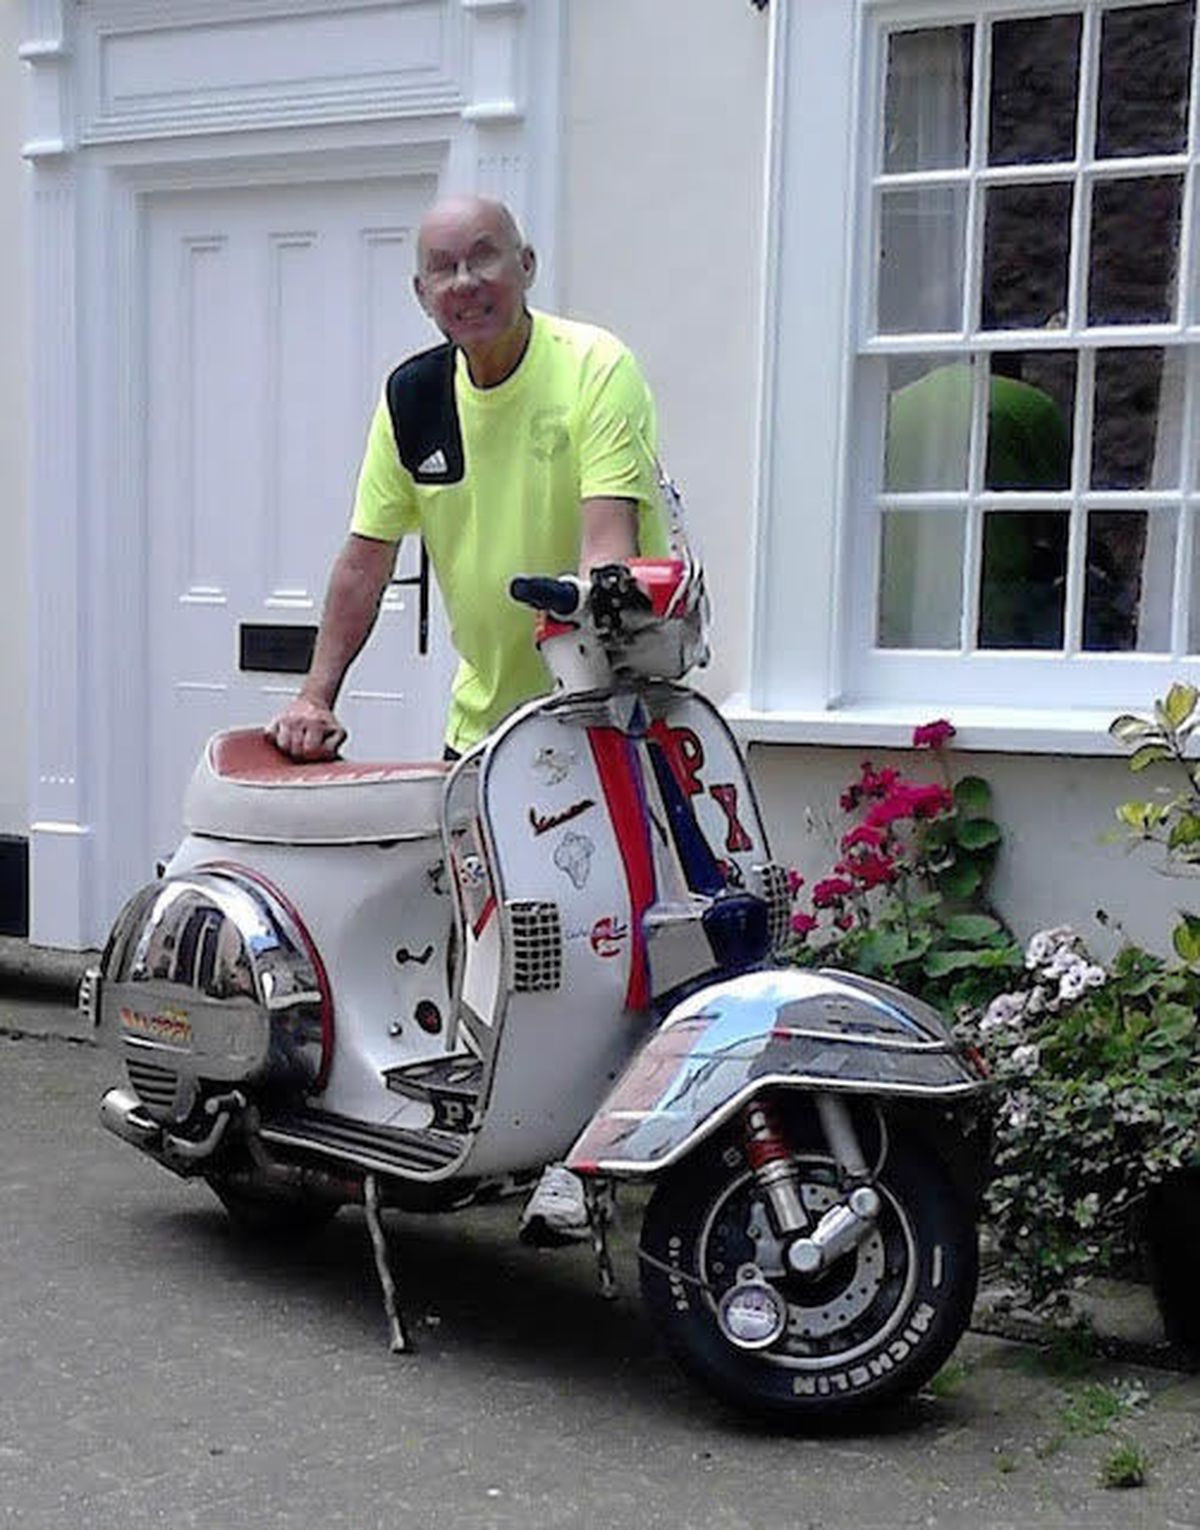 Kenny Barber poses with a moped in Tenby in 2011